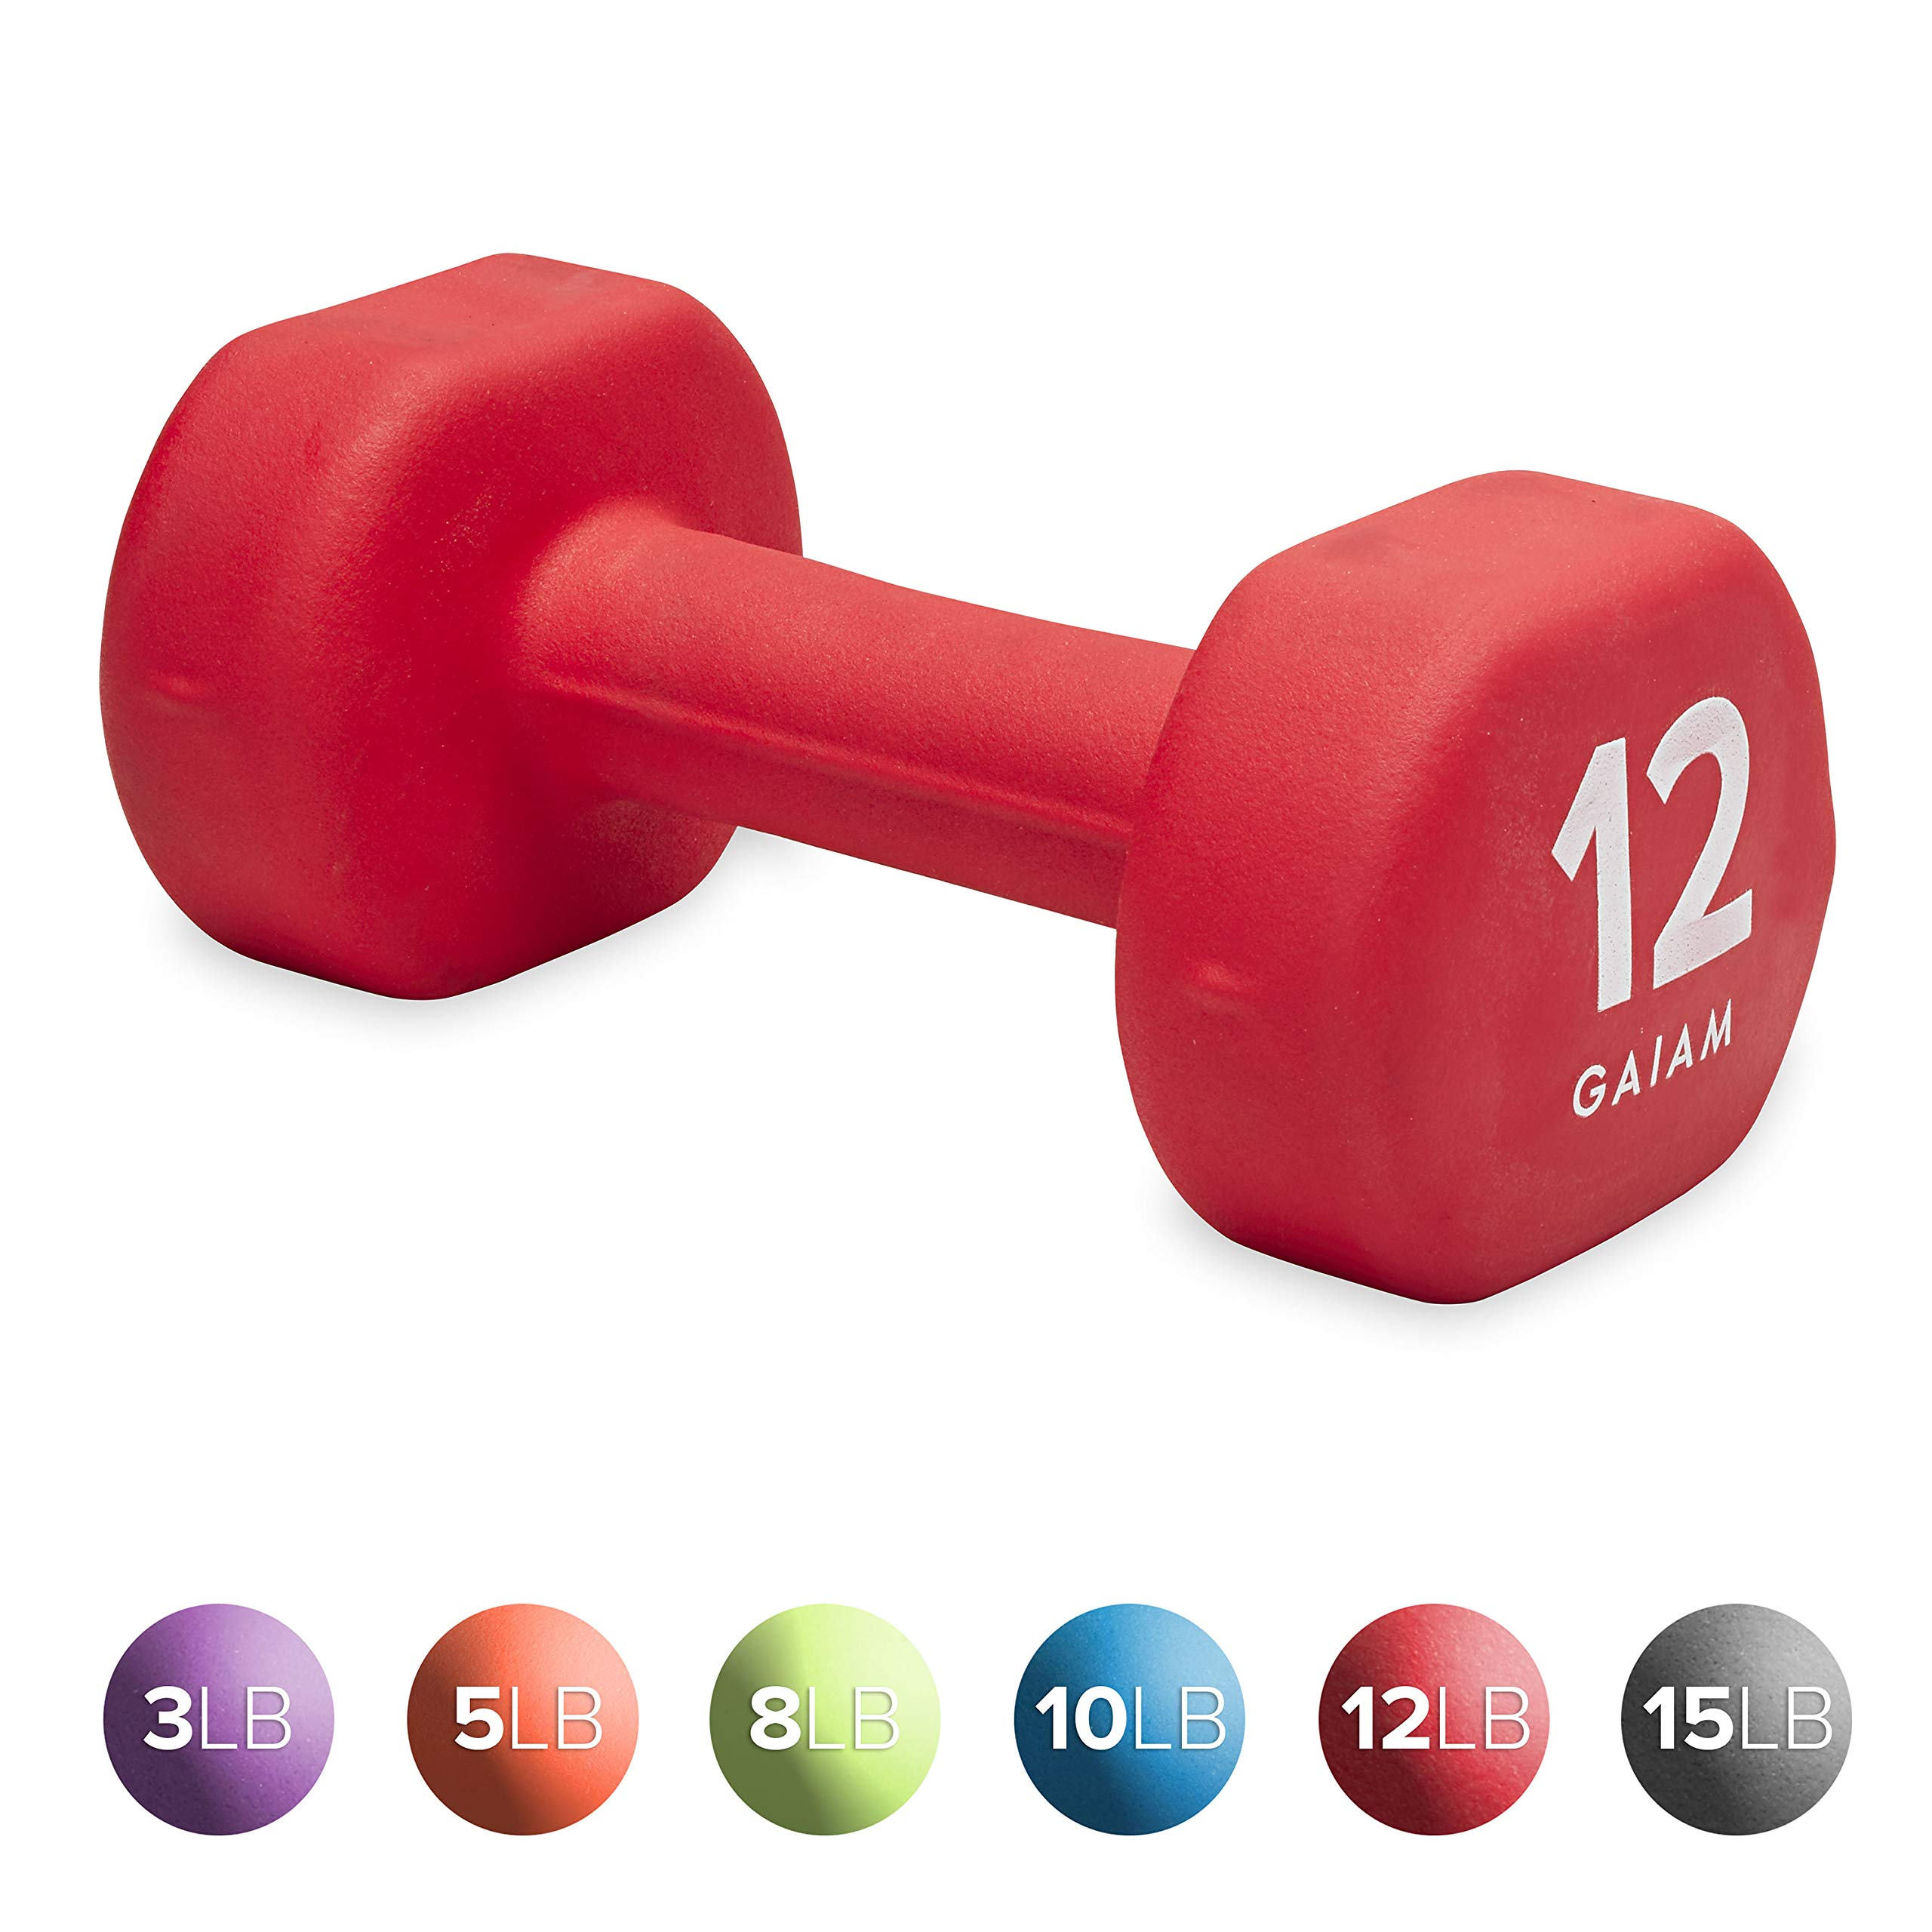 Gaiam Neoprene Dumbbell Hand Weight, Red, 12 lb (Sold as Single Dumbbell)